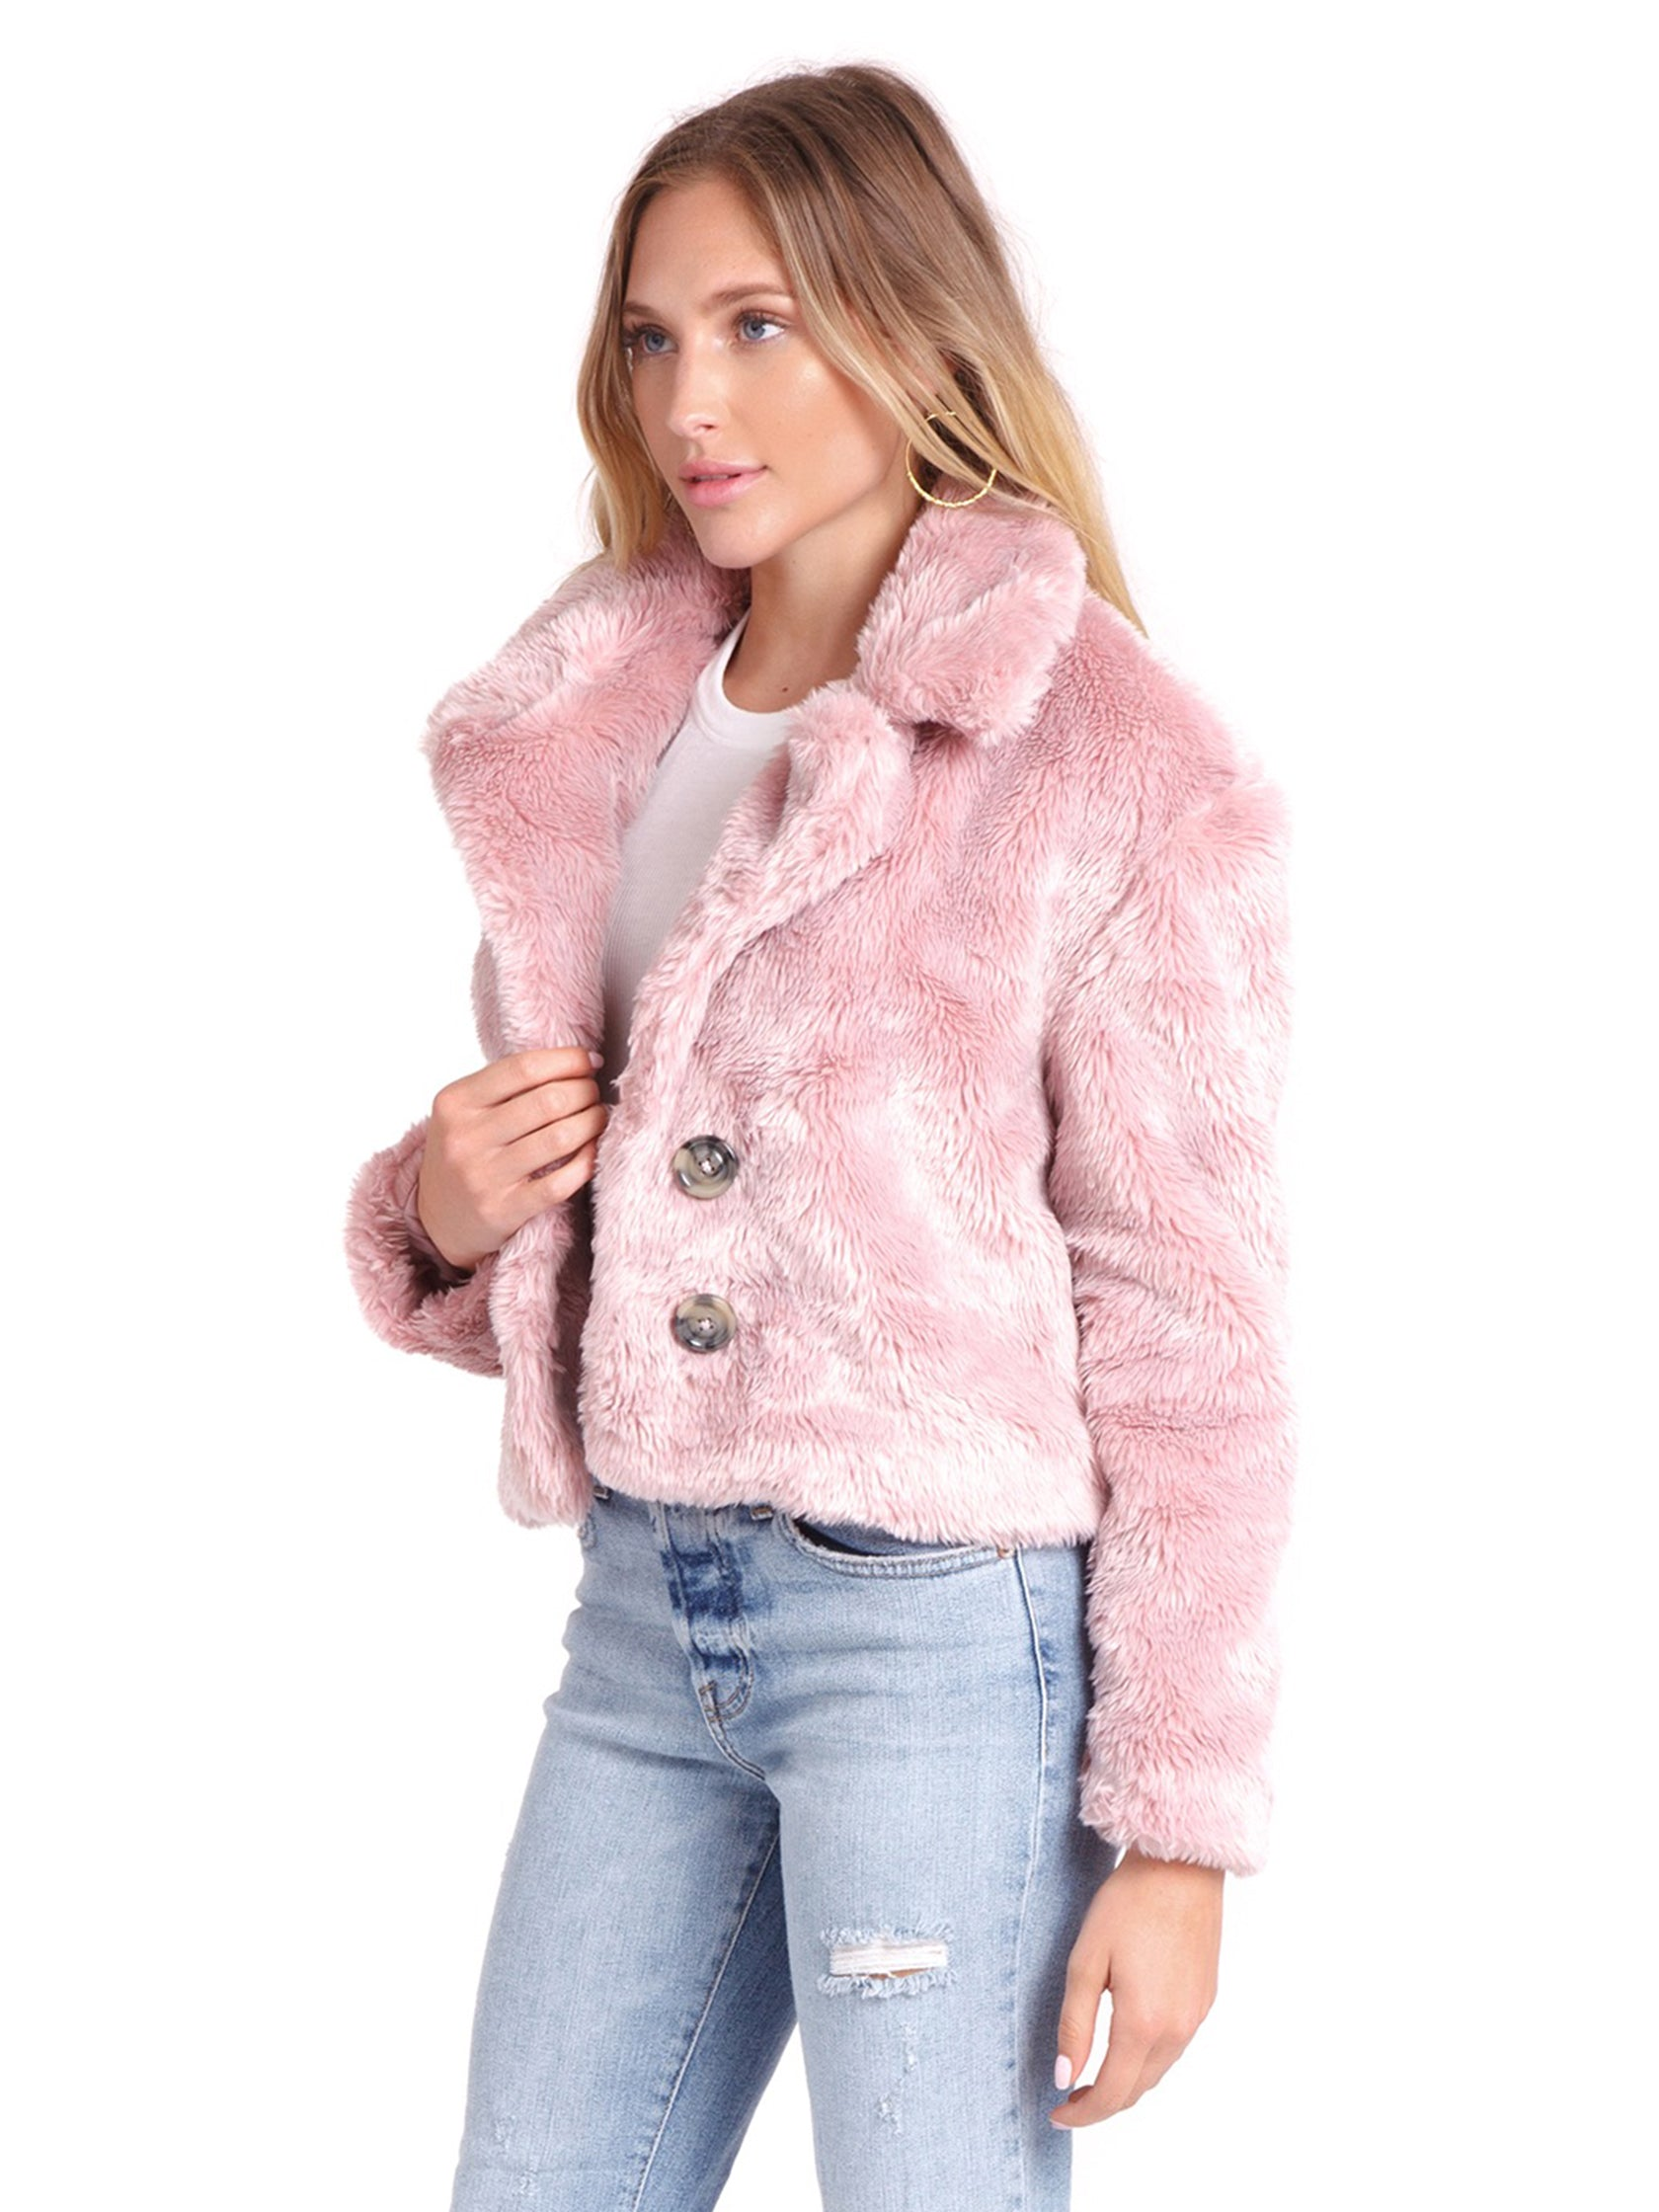 Women wearing a jacket rental from Free People called Mena Fur Coat